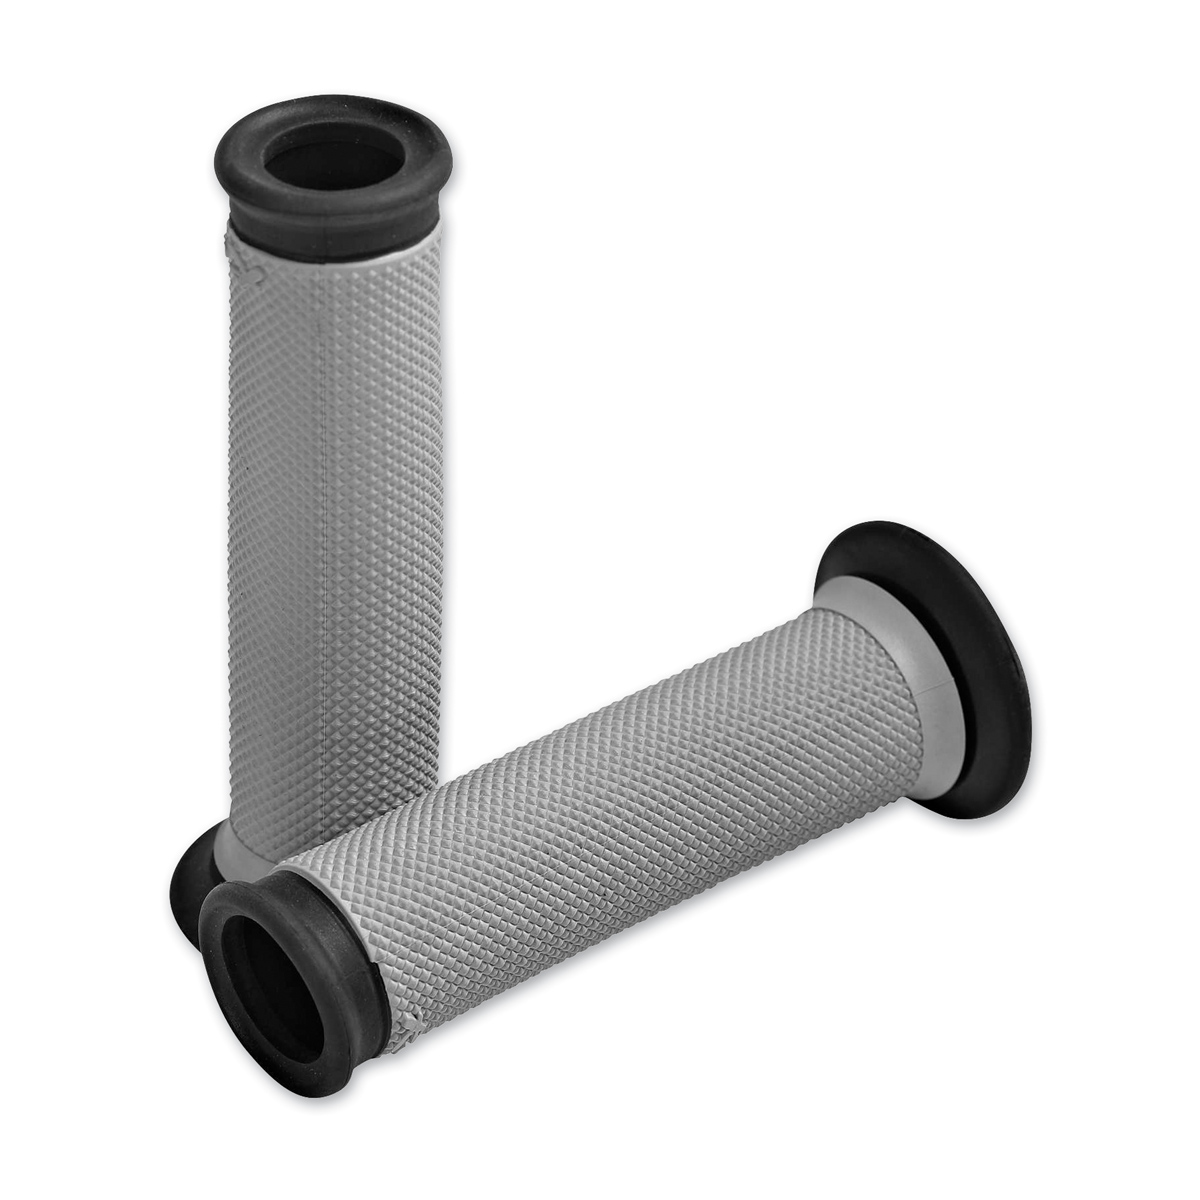 Renthal Road Dual Compound Grips 29mm Diameter